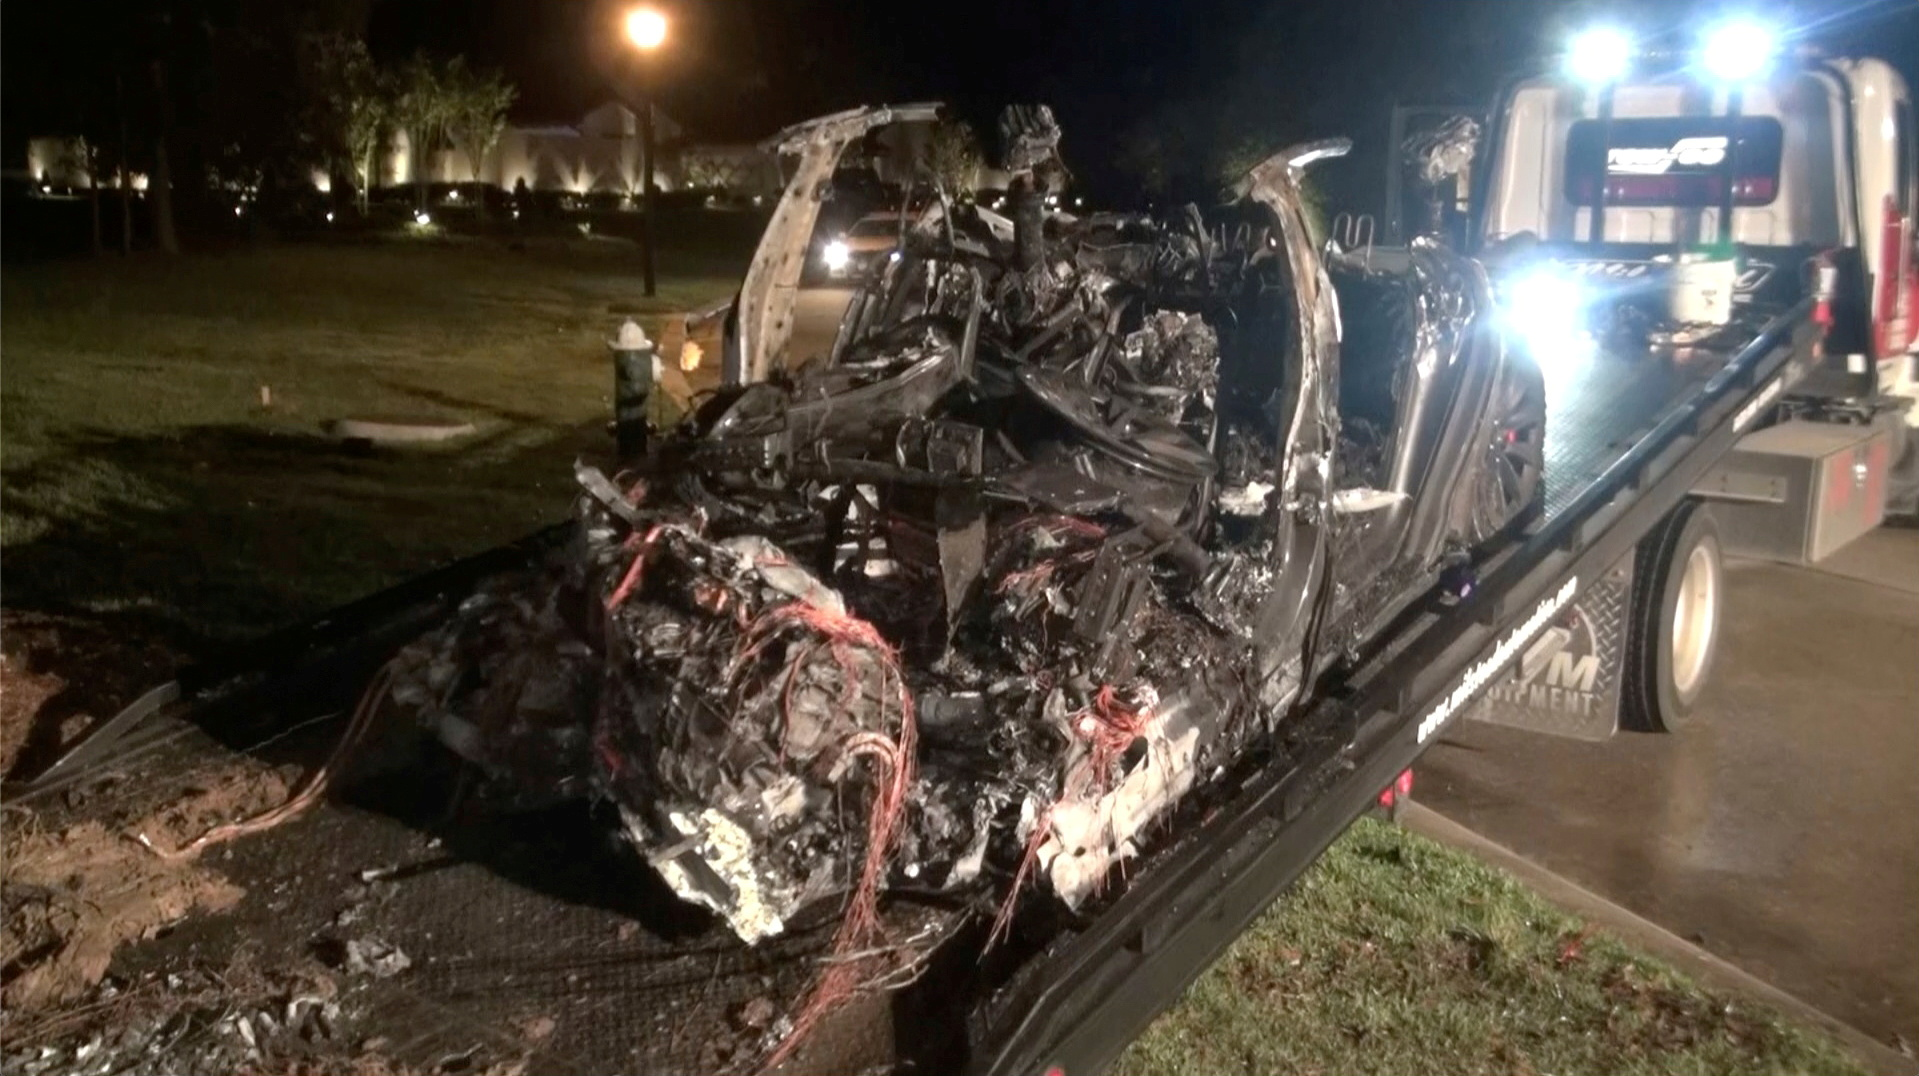 The remains of a Tesla vehicle are seen after it crashed in The Woodlands, Texas, April 17, 2021, in this still image from video obtained via social media. — Screen capture of video by Scott J. Engle via Reuters